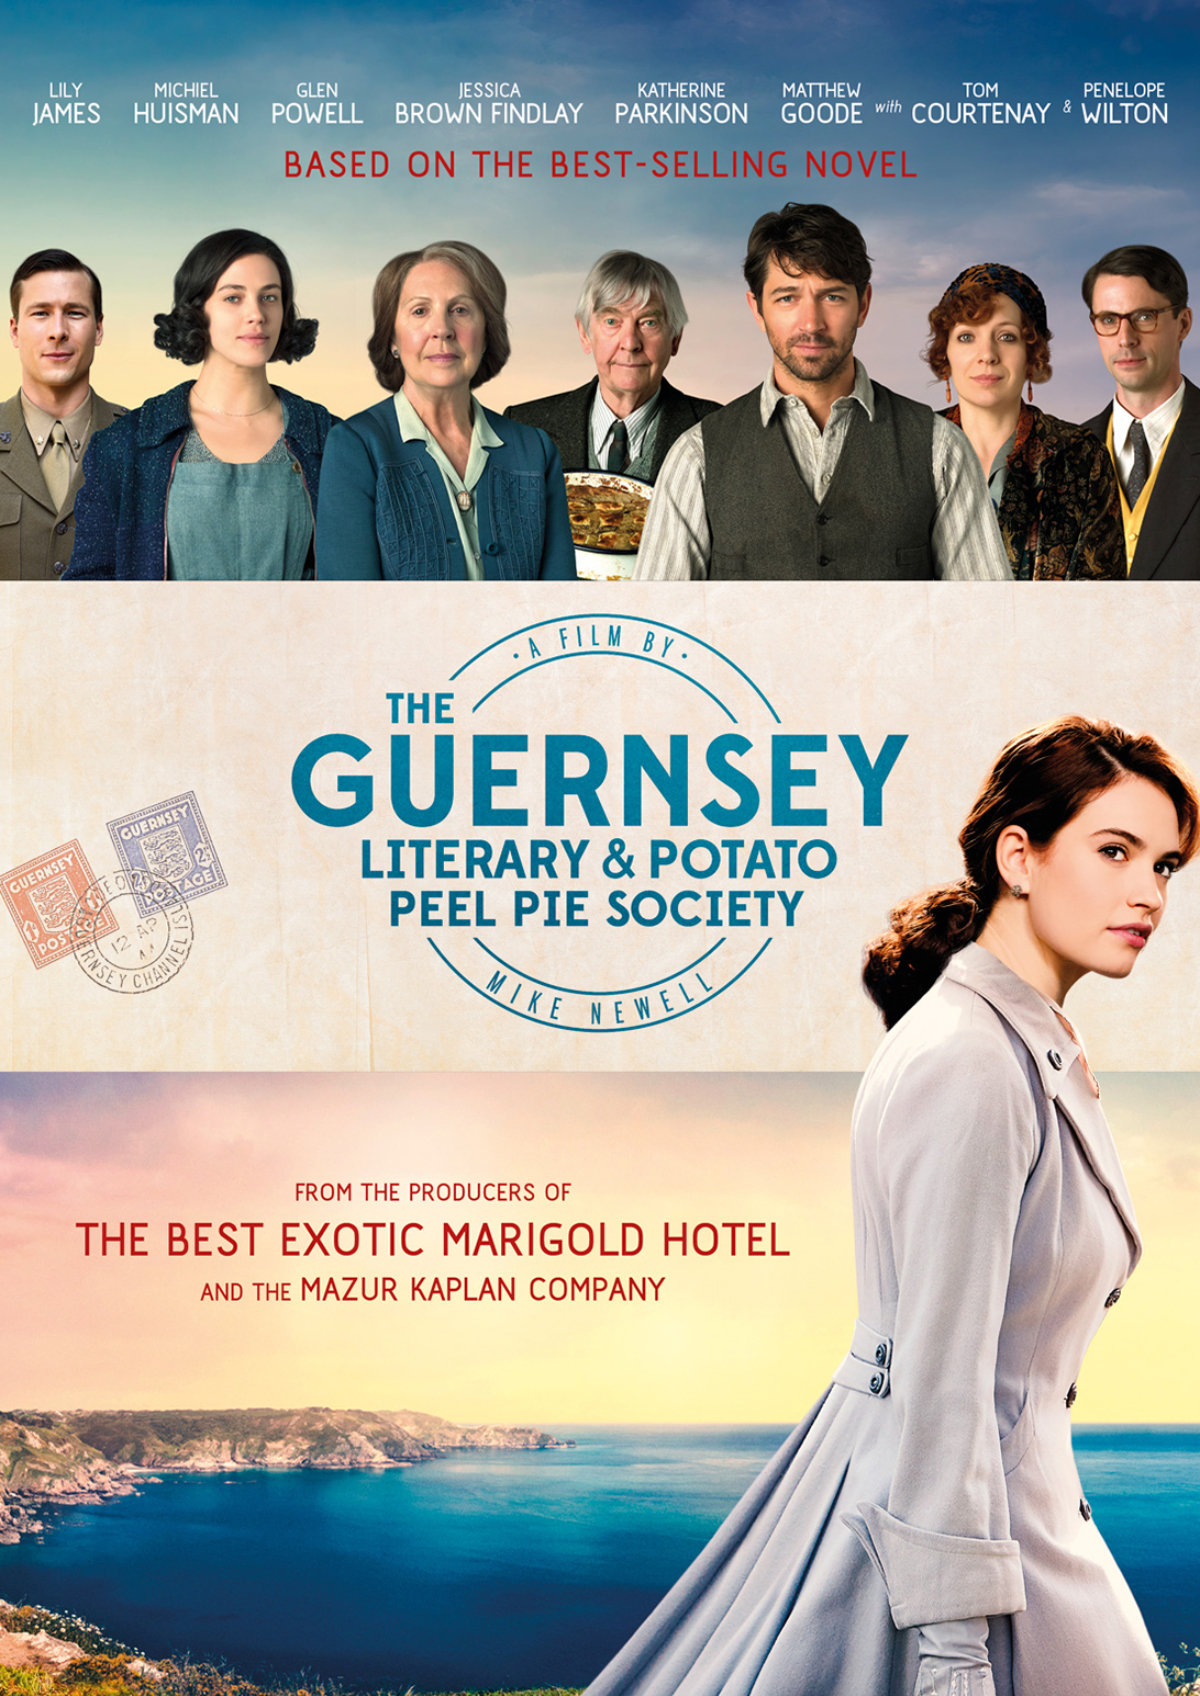 'The Guernsey Literary And Potato Peel Pie Society' movie poster